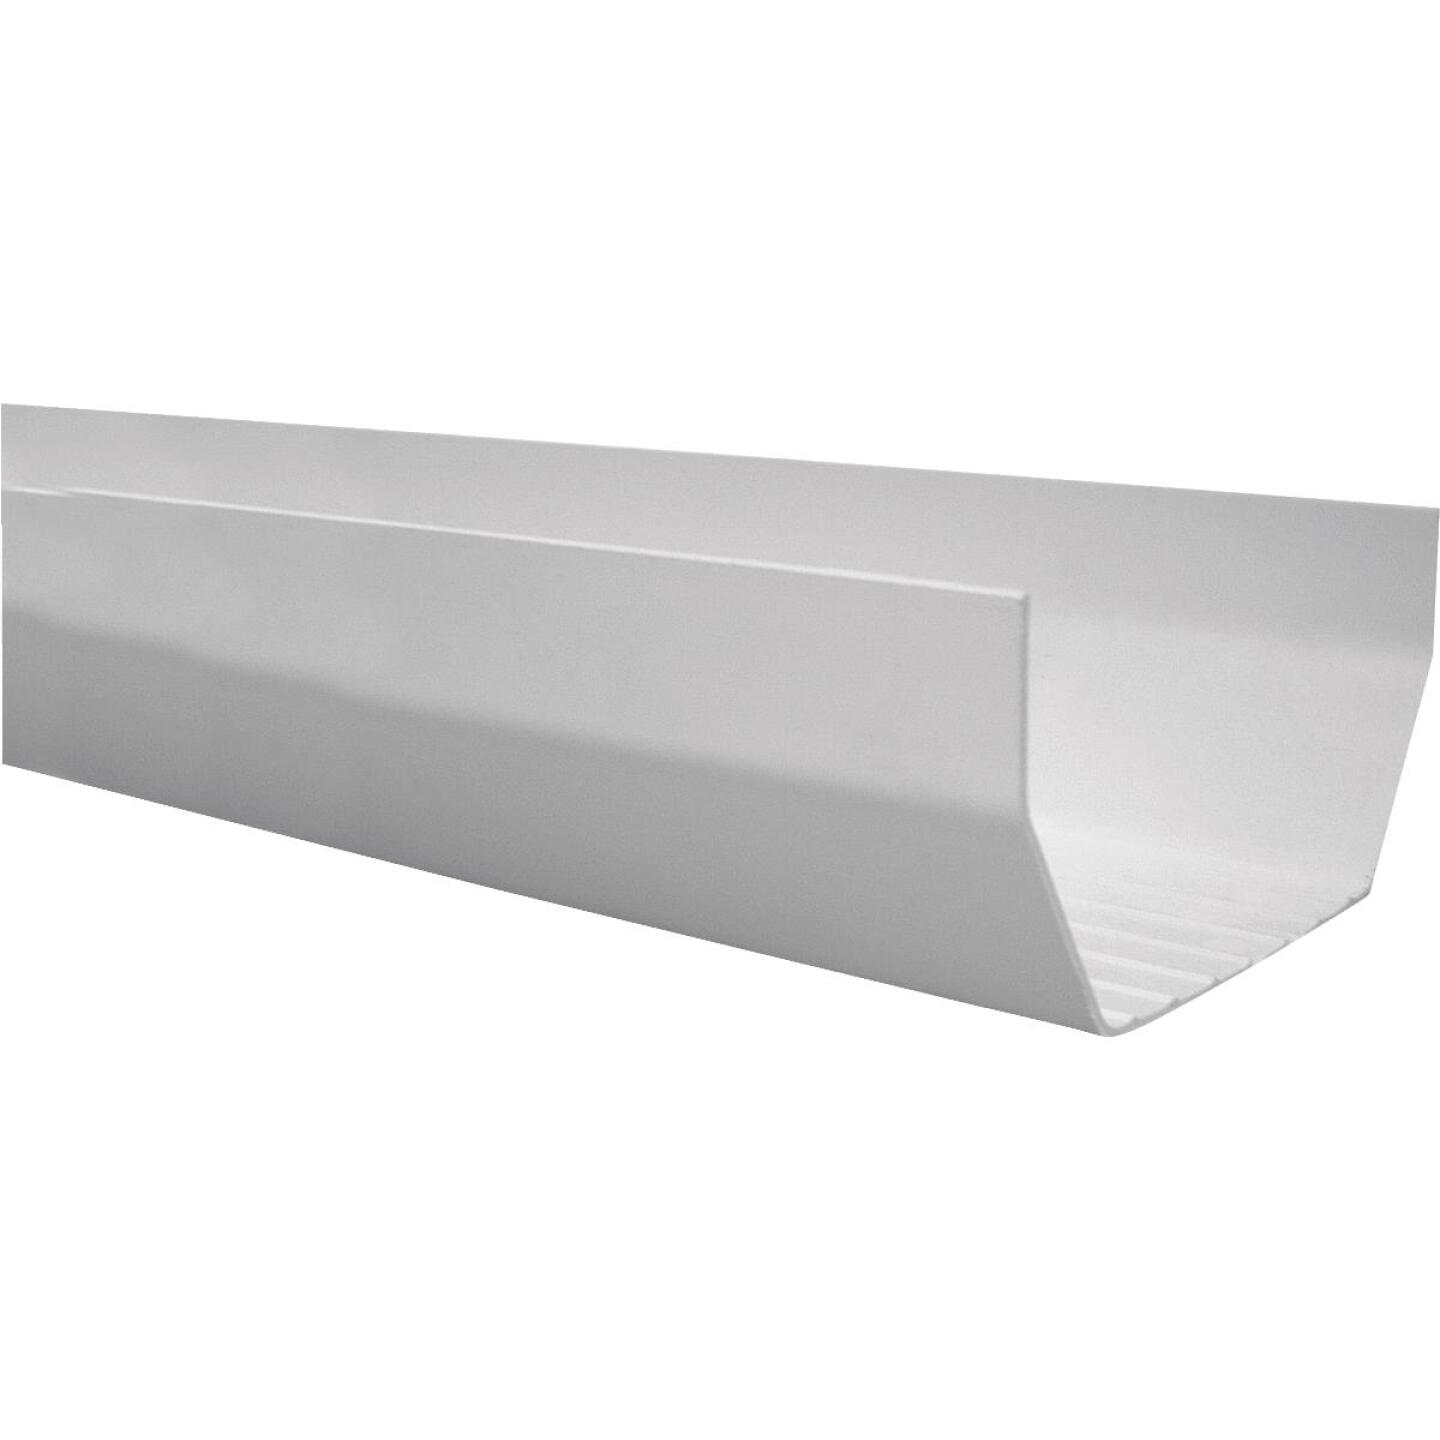 RainGo 5 In. x 10 Ft. White Vinyl Gutter Image 1